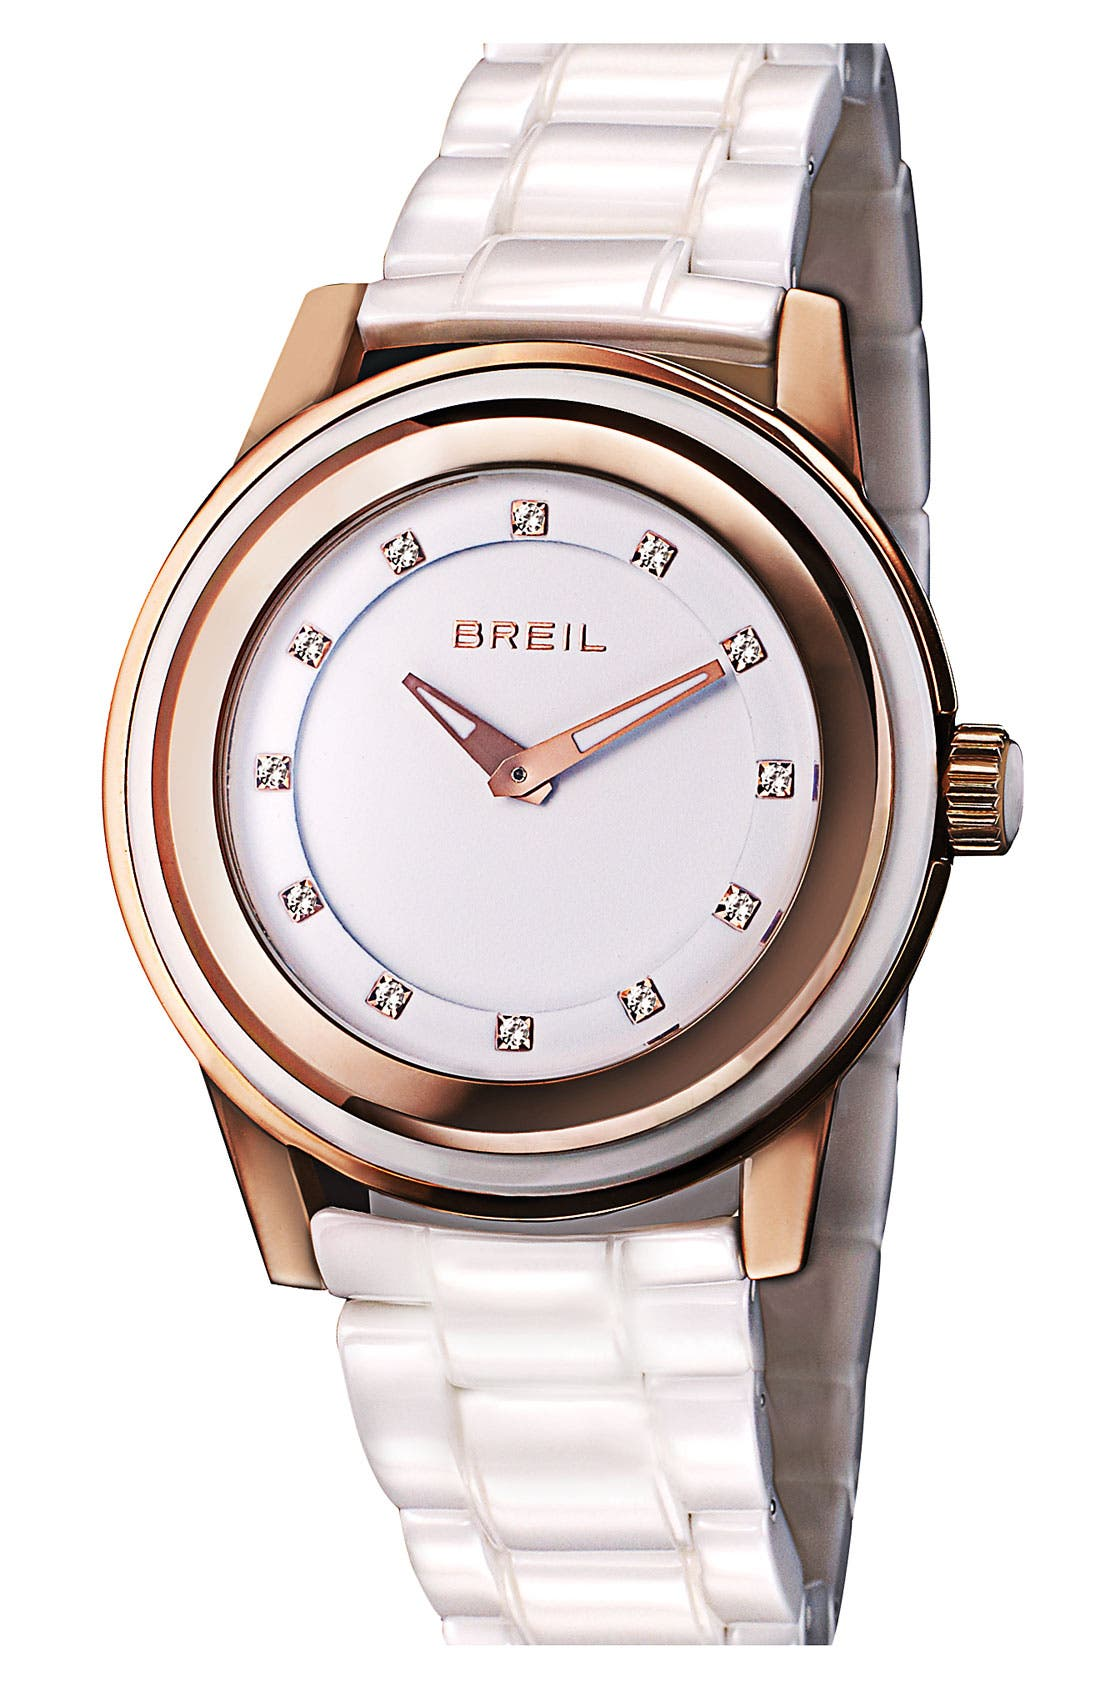 Alternate Image 1 Selected - Breil 'Orchestra' Crystal Index Ceramic Watch, 40mm ($395 Value)